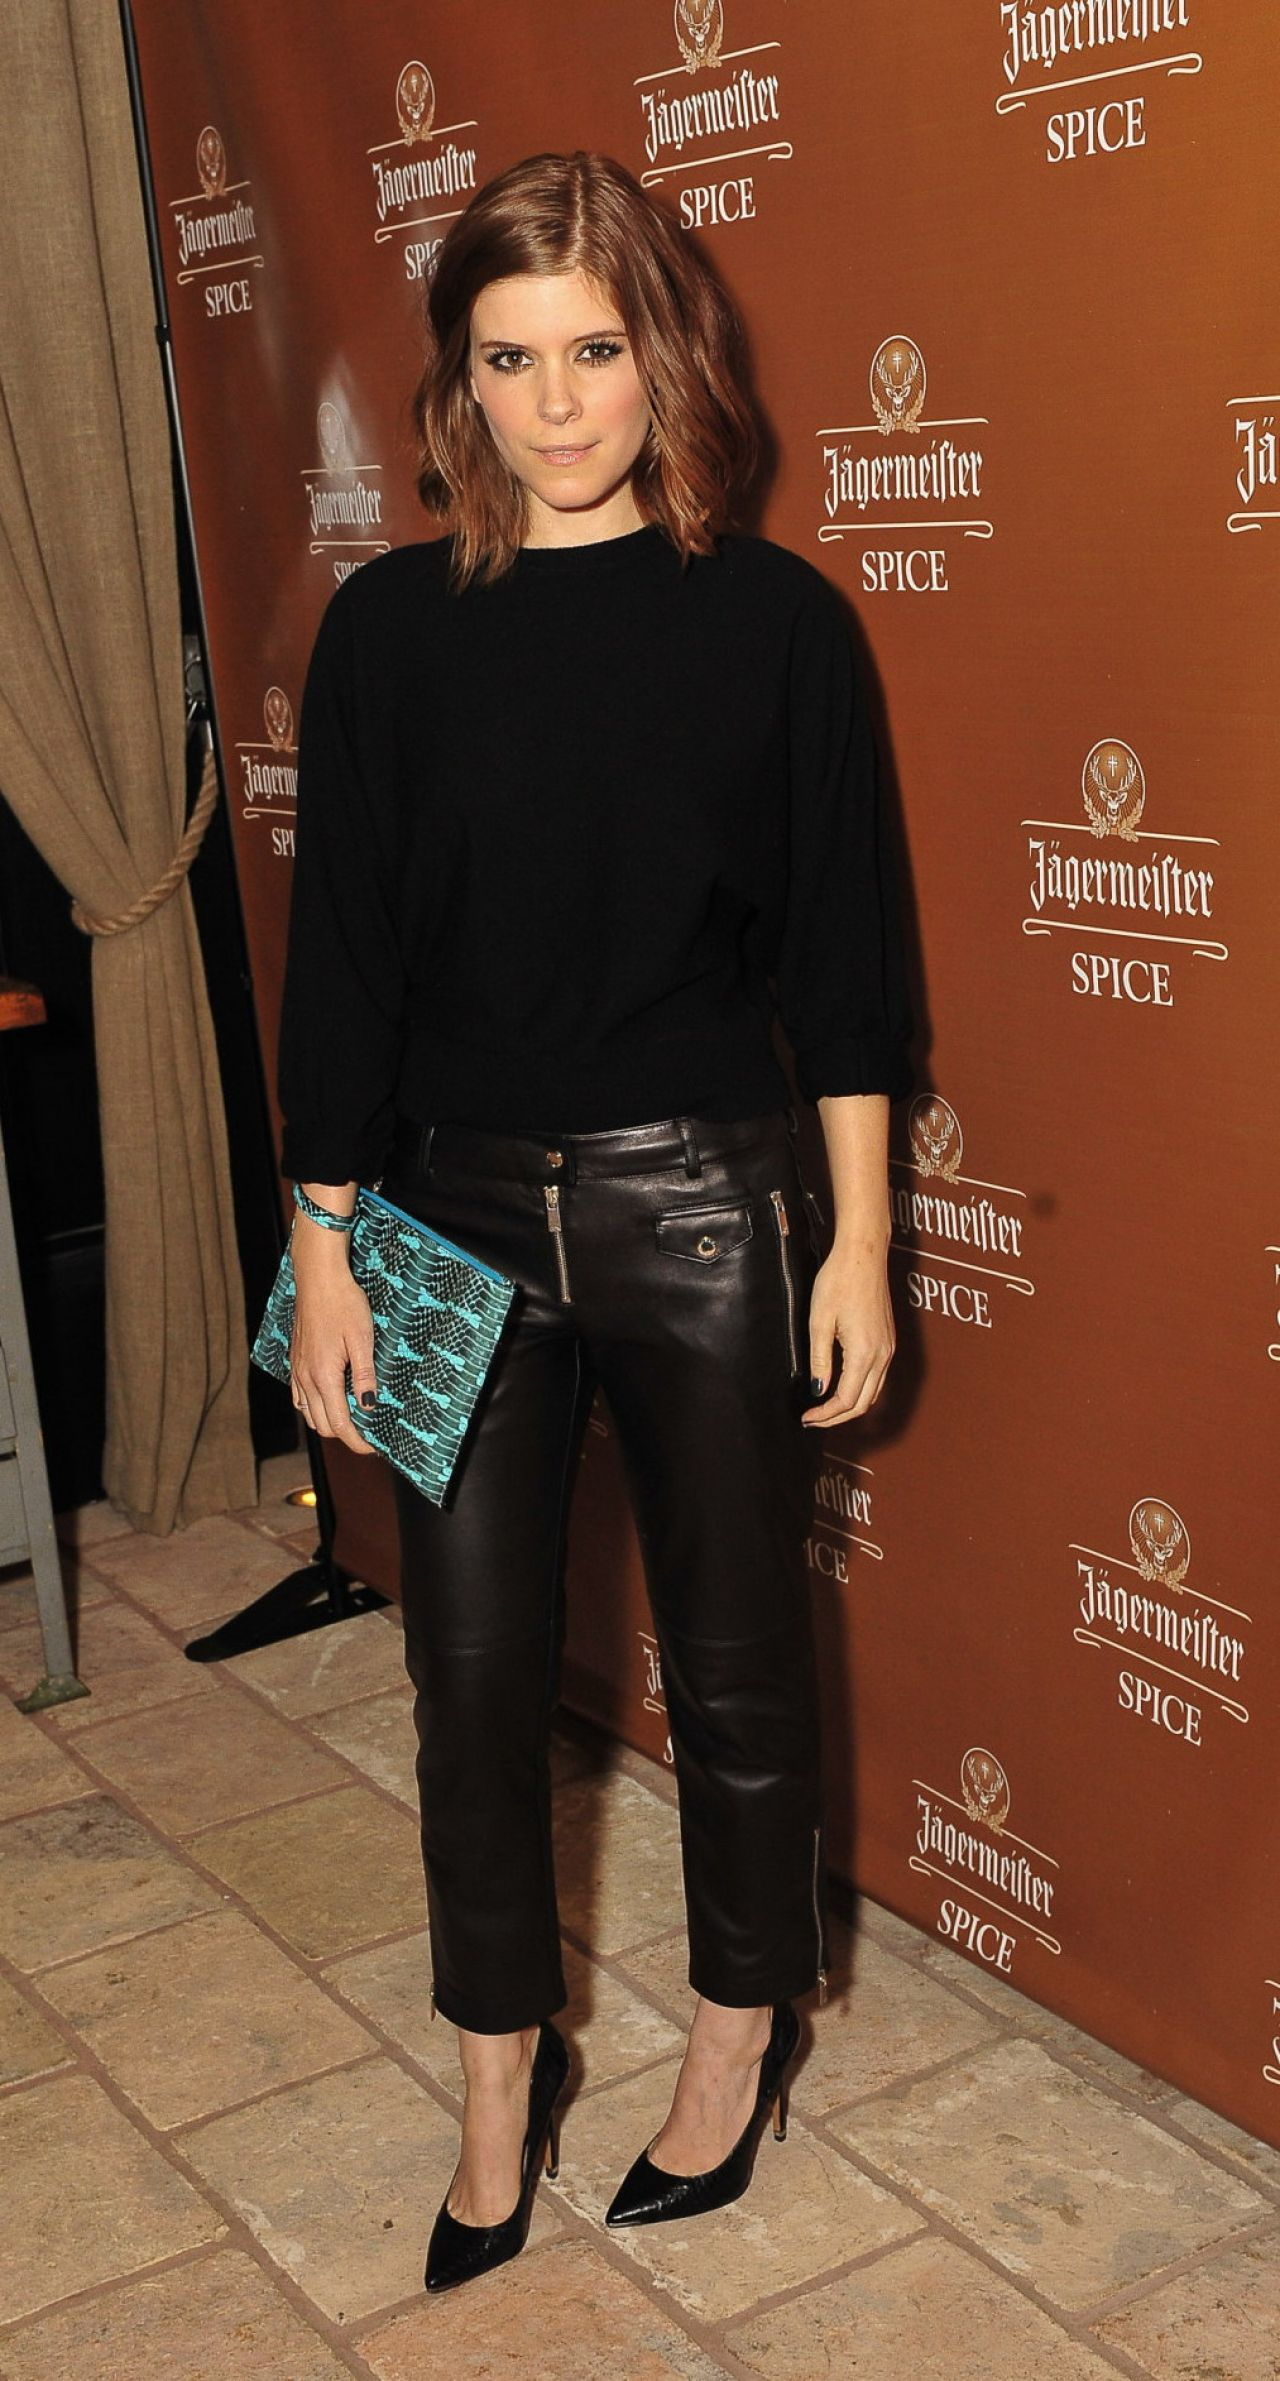 Kate Mara attends the Jagermeister Spice Launch in New York City.